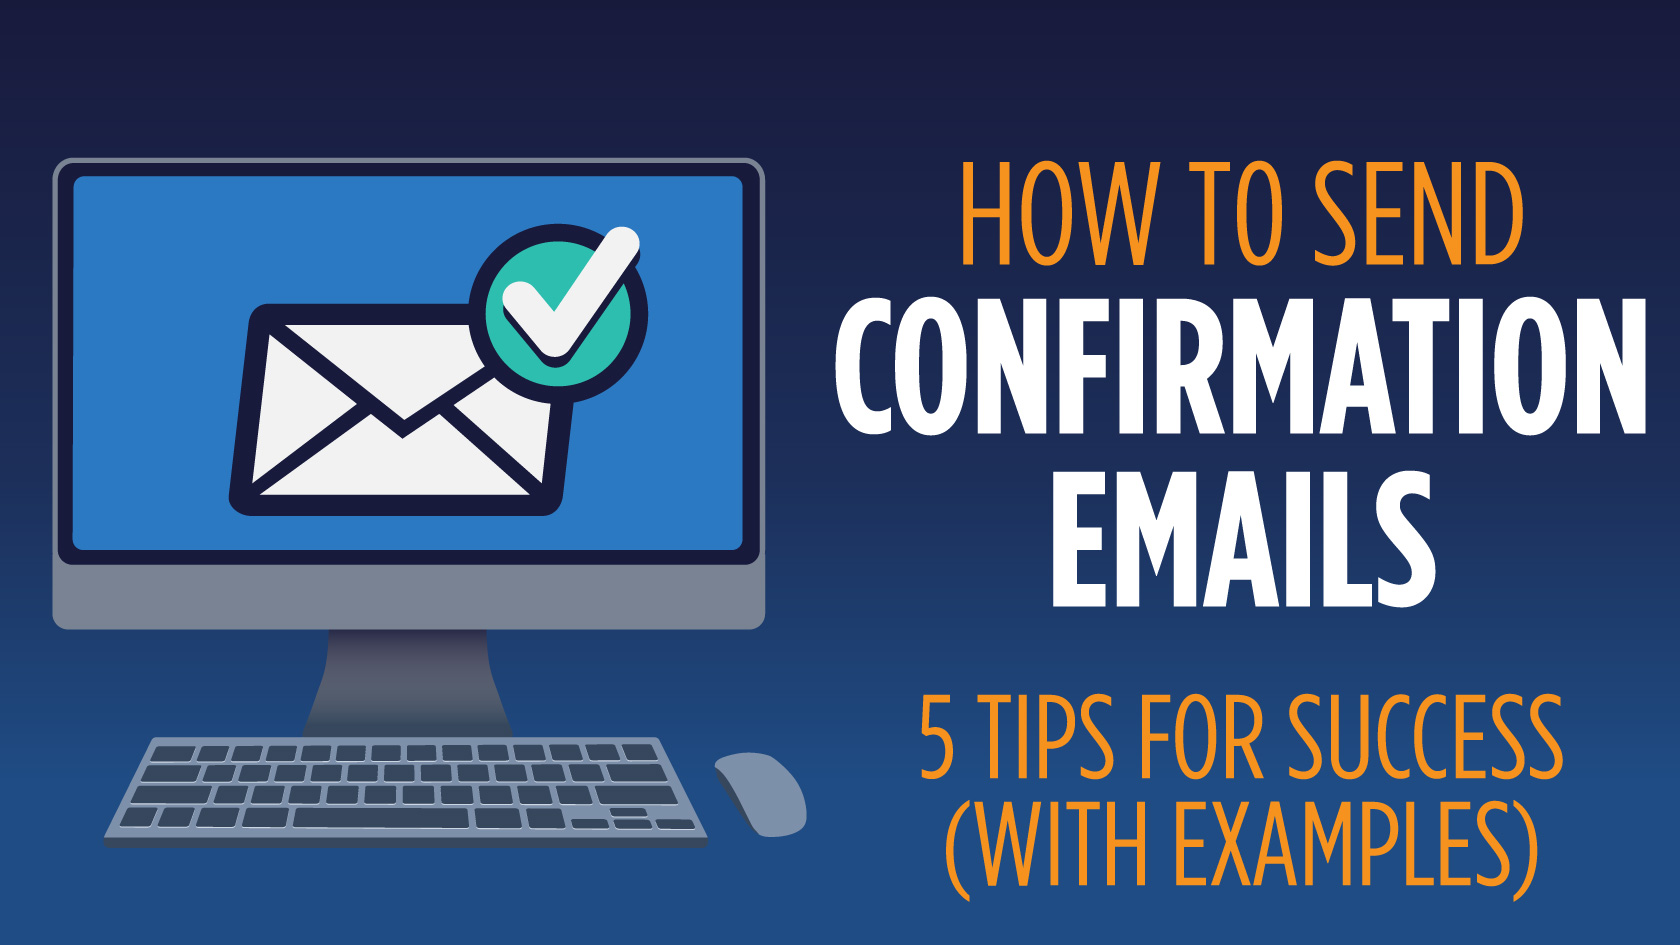 how to send confirmation emails